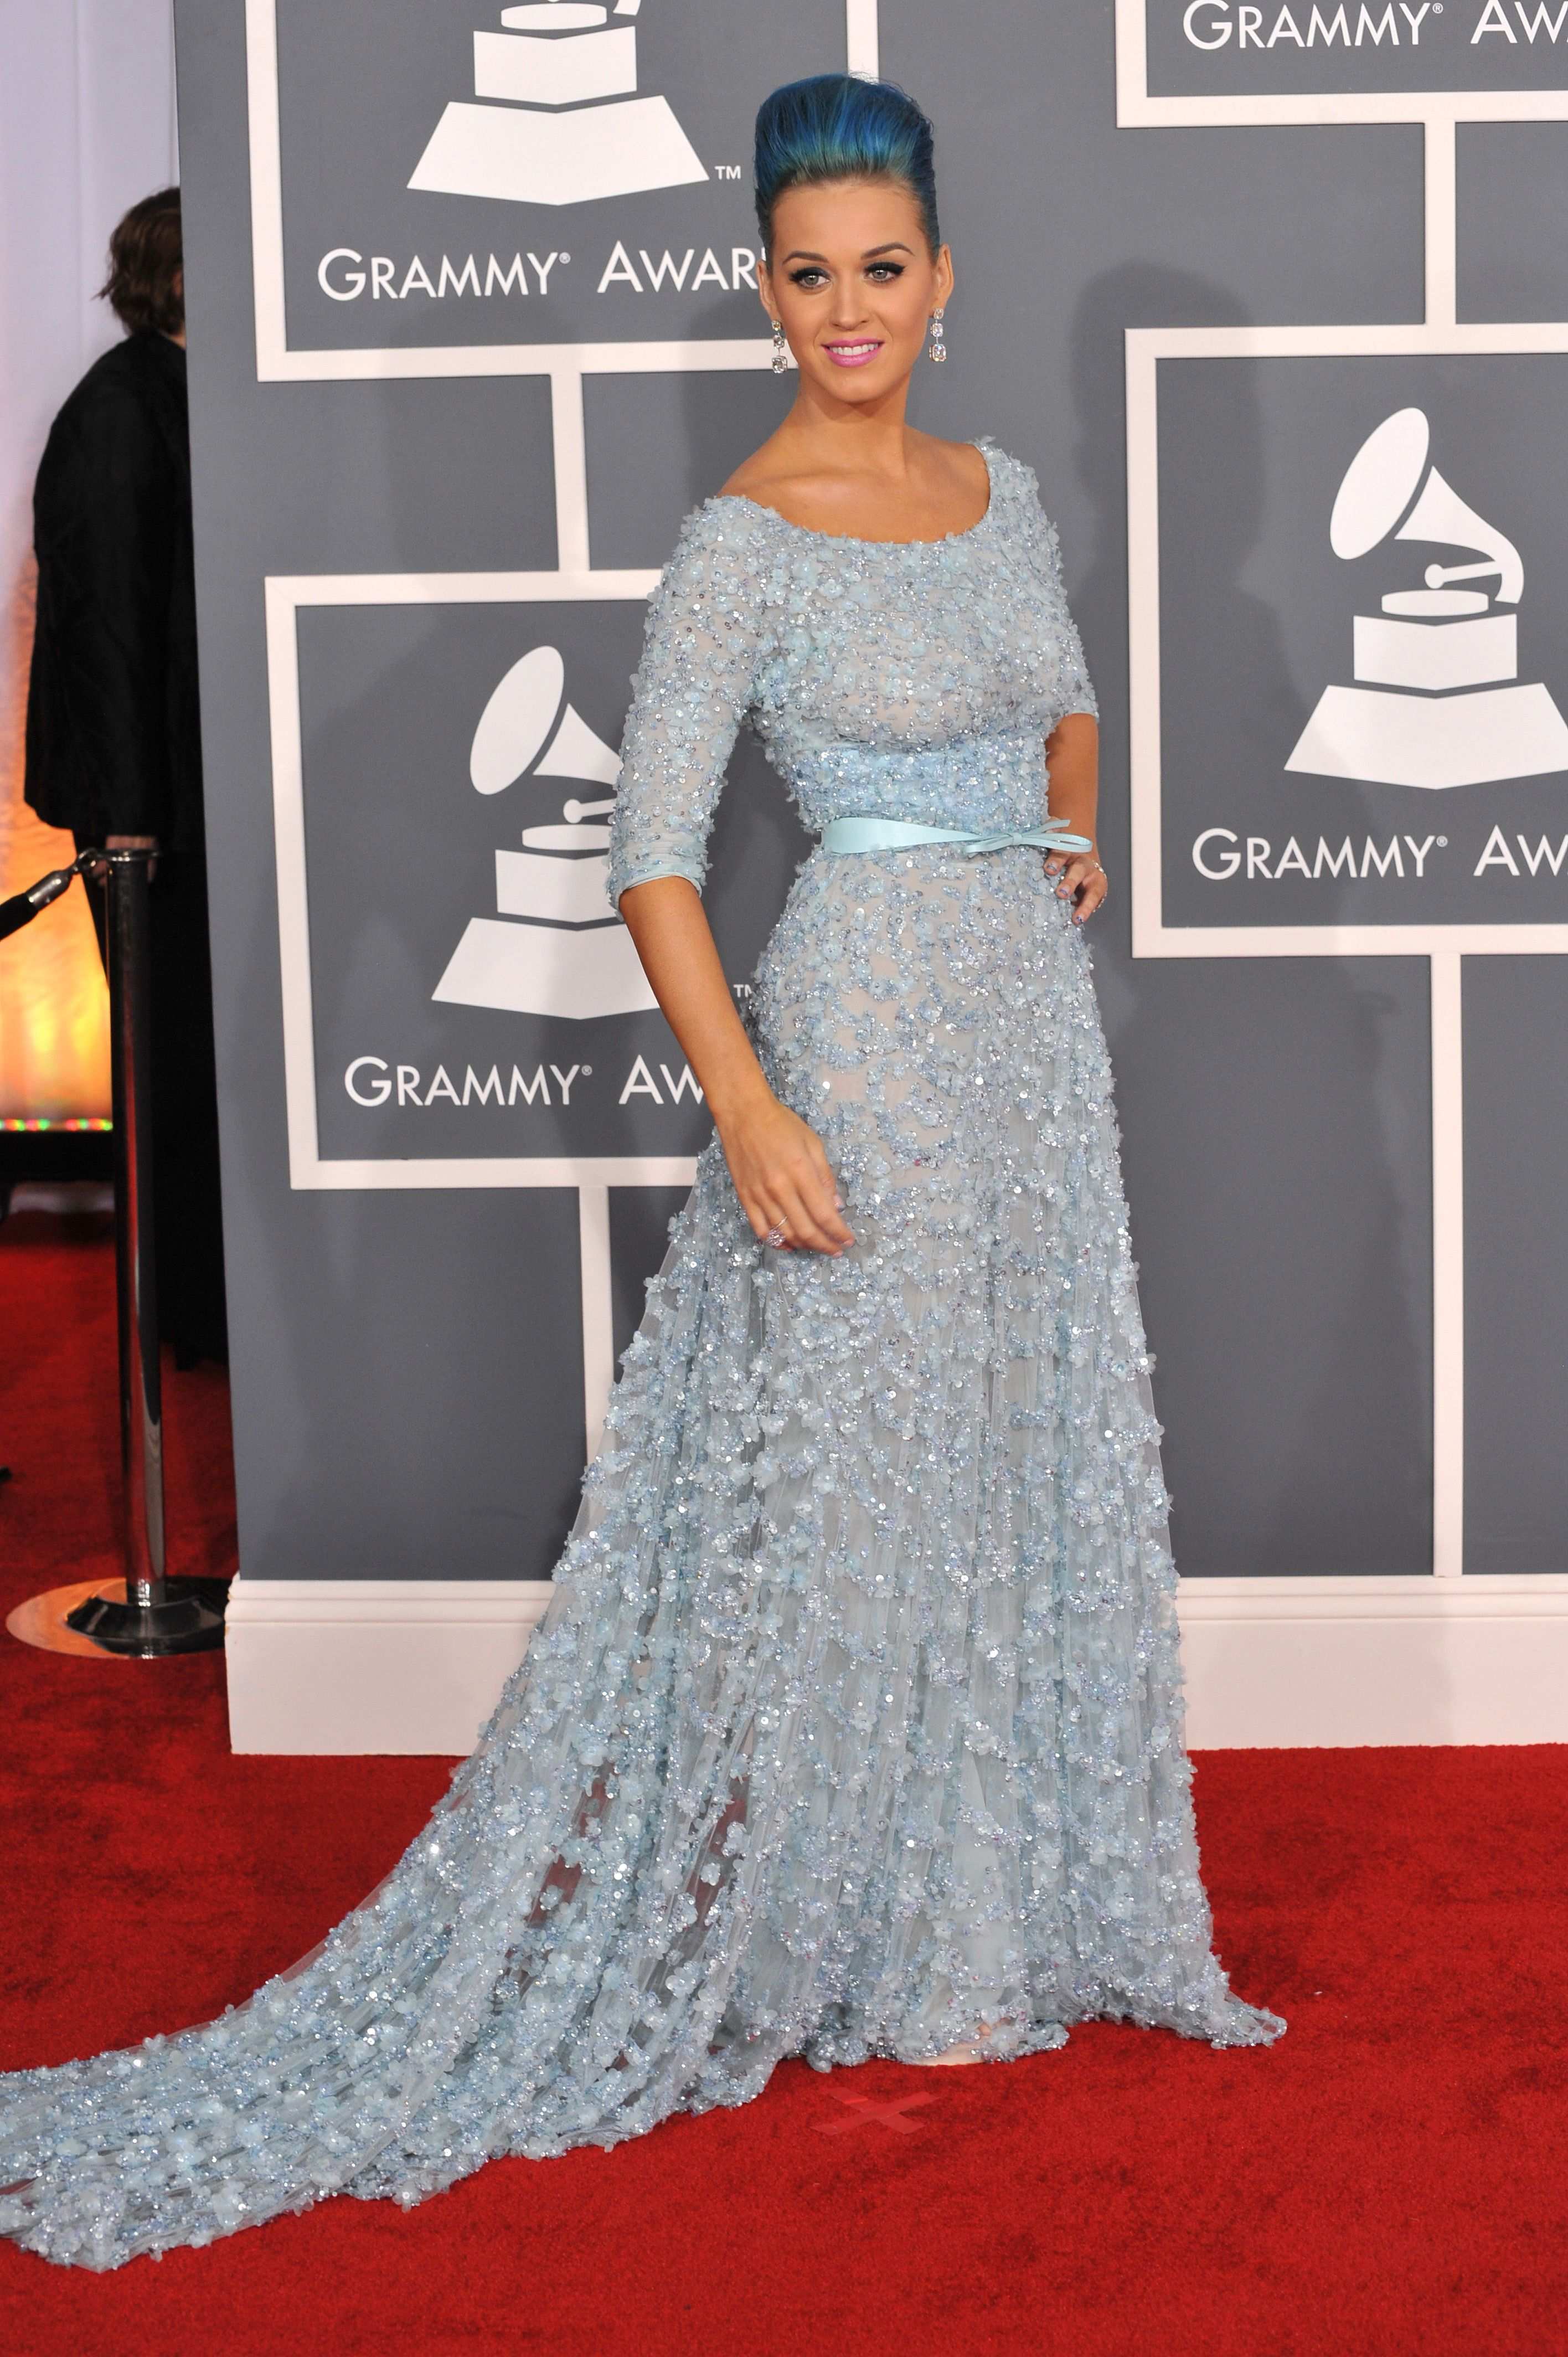 Katy Perry wearing blue gown with blue hair